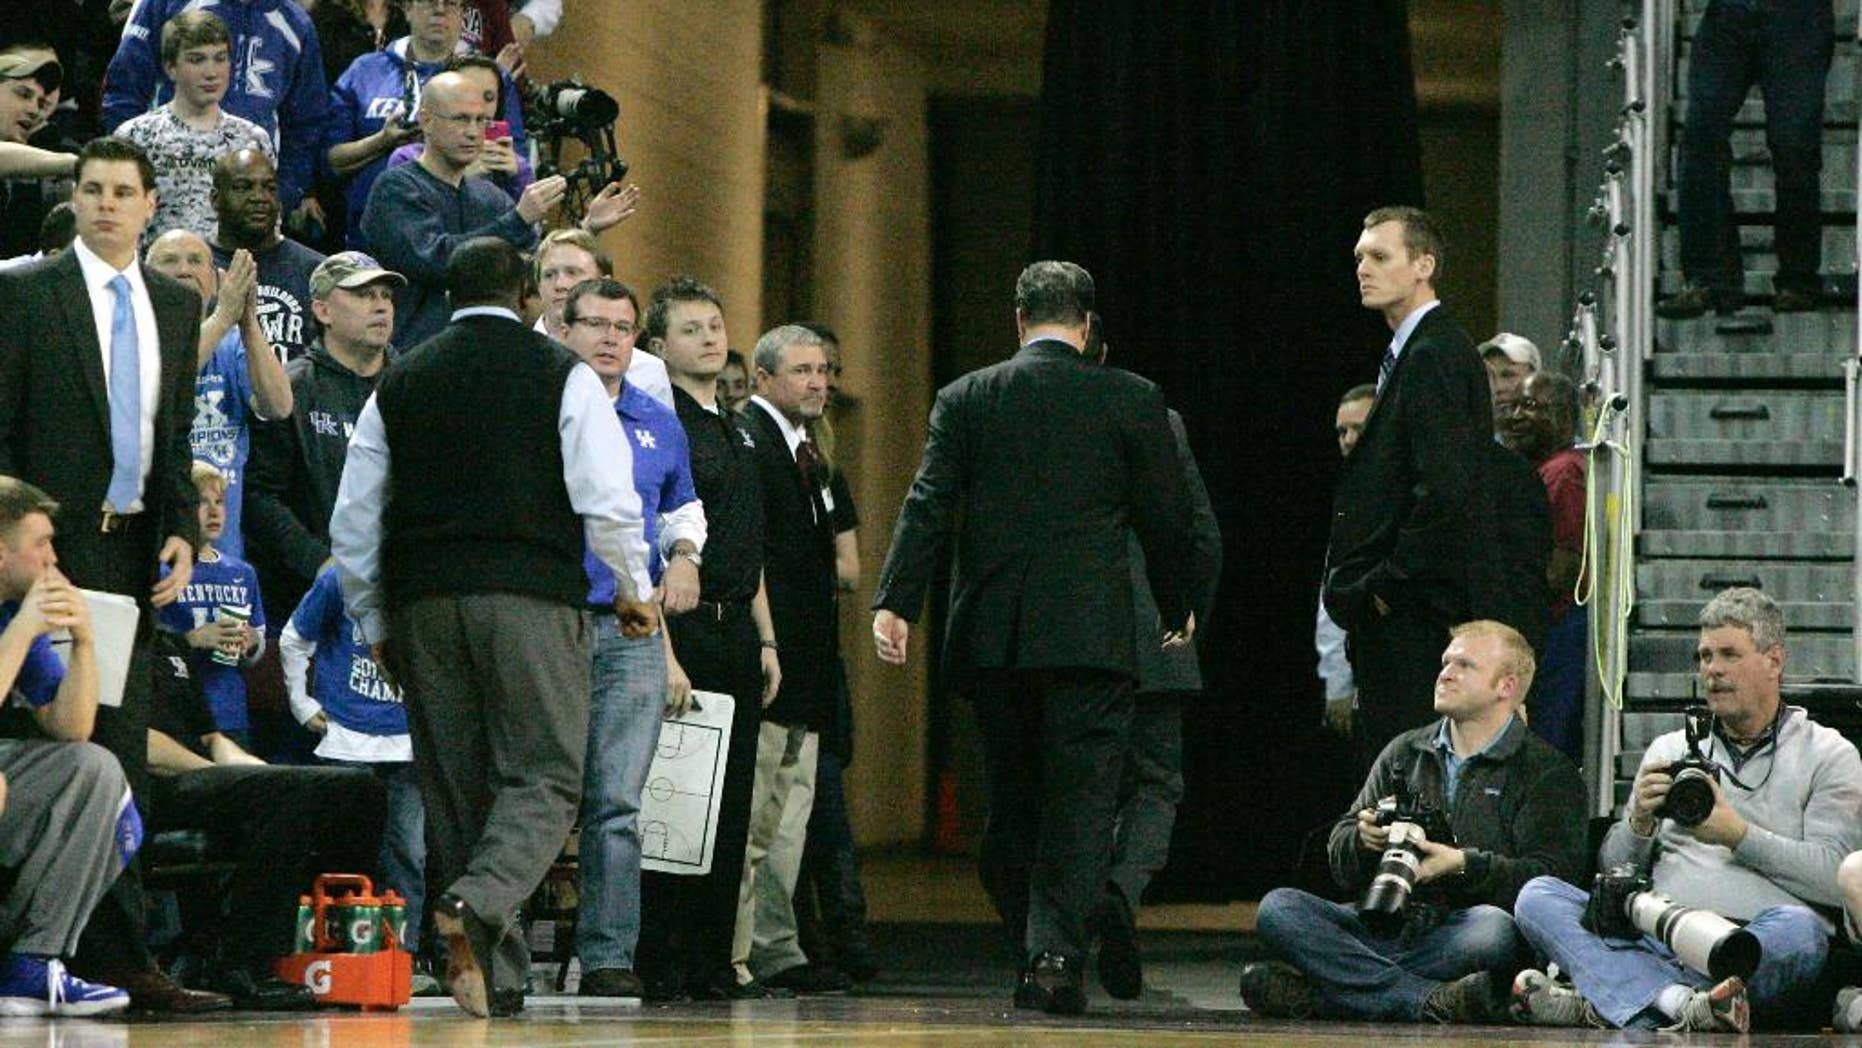 Kentucky coach John Calipari leaves after being ejected during the second half of Kentucky's NCAA college basketball game against South Carolina on Saturday, March 1, 2014, in Columbia, S.C. (AP Photo/Mary Ann Chastain)